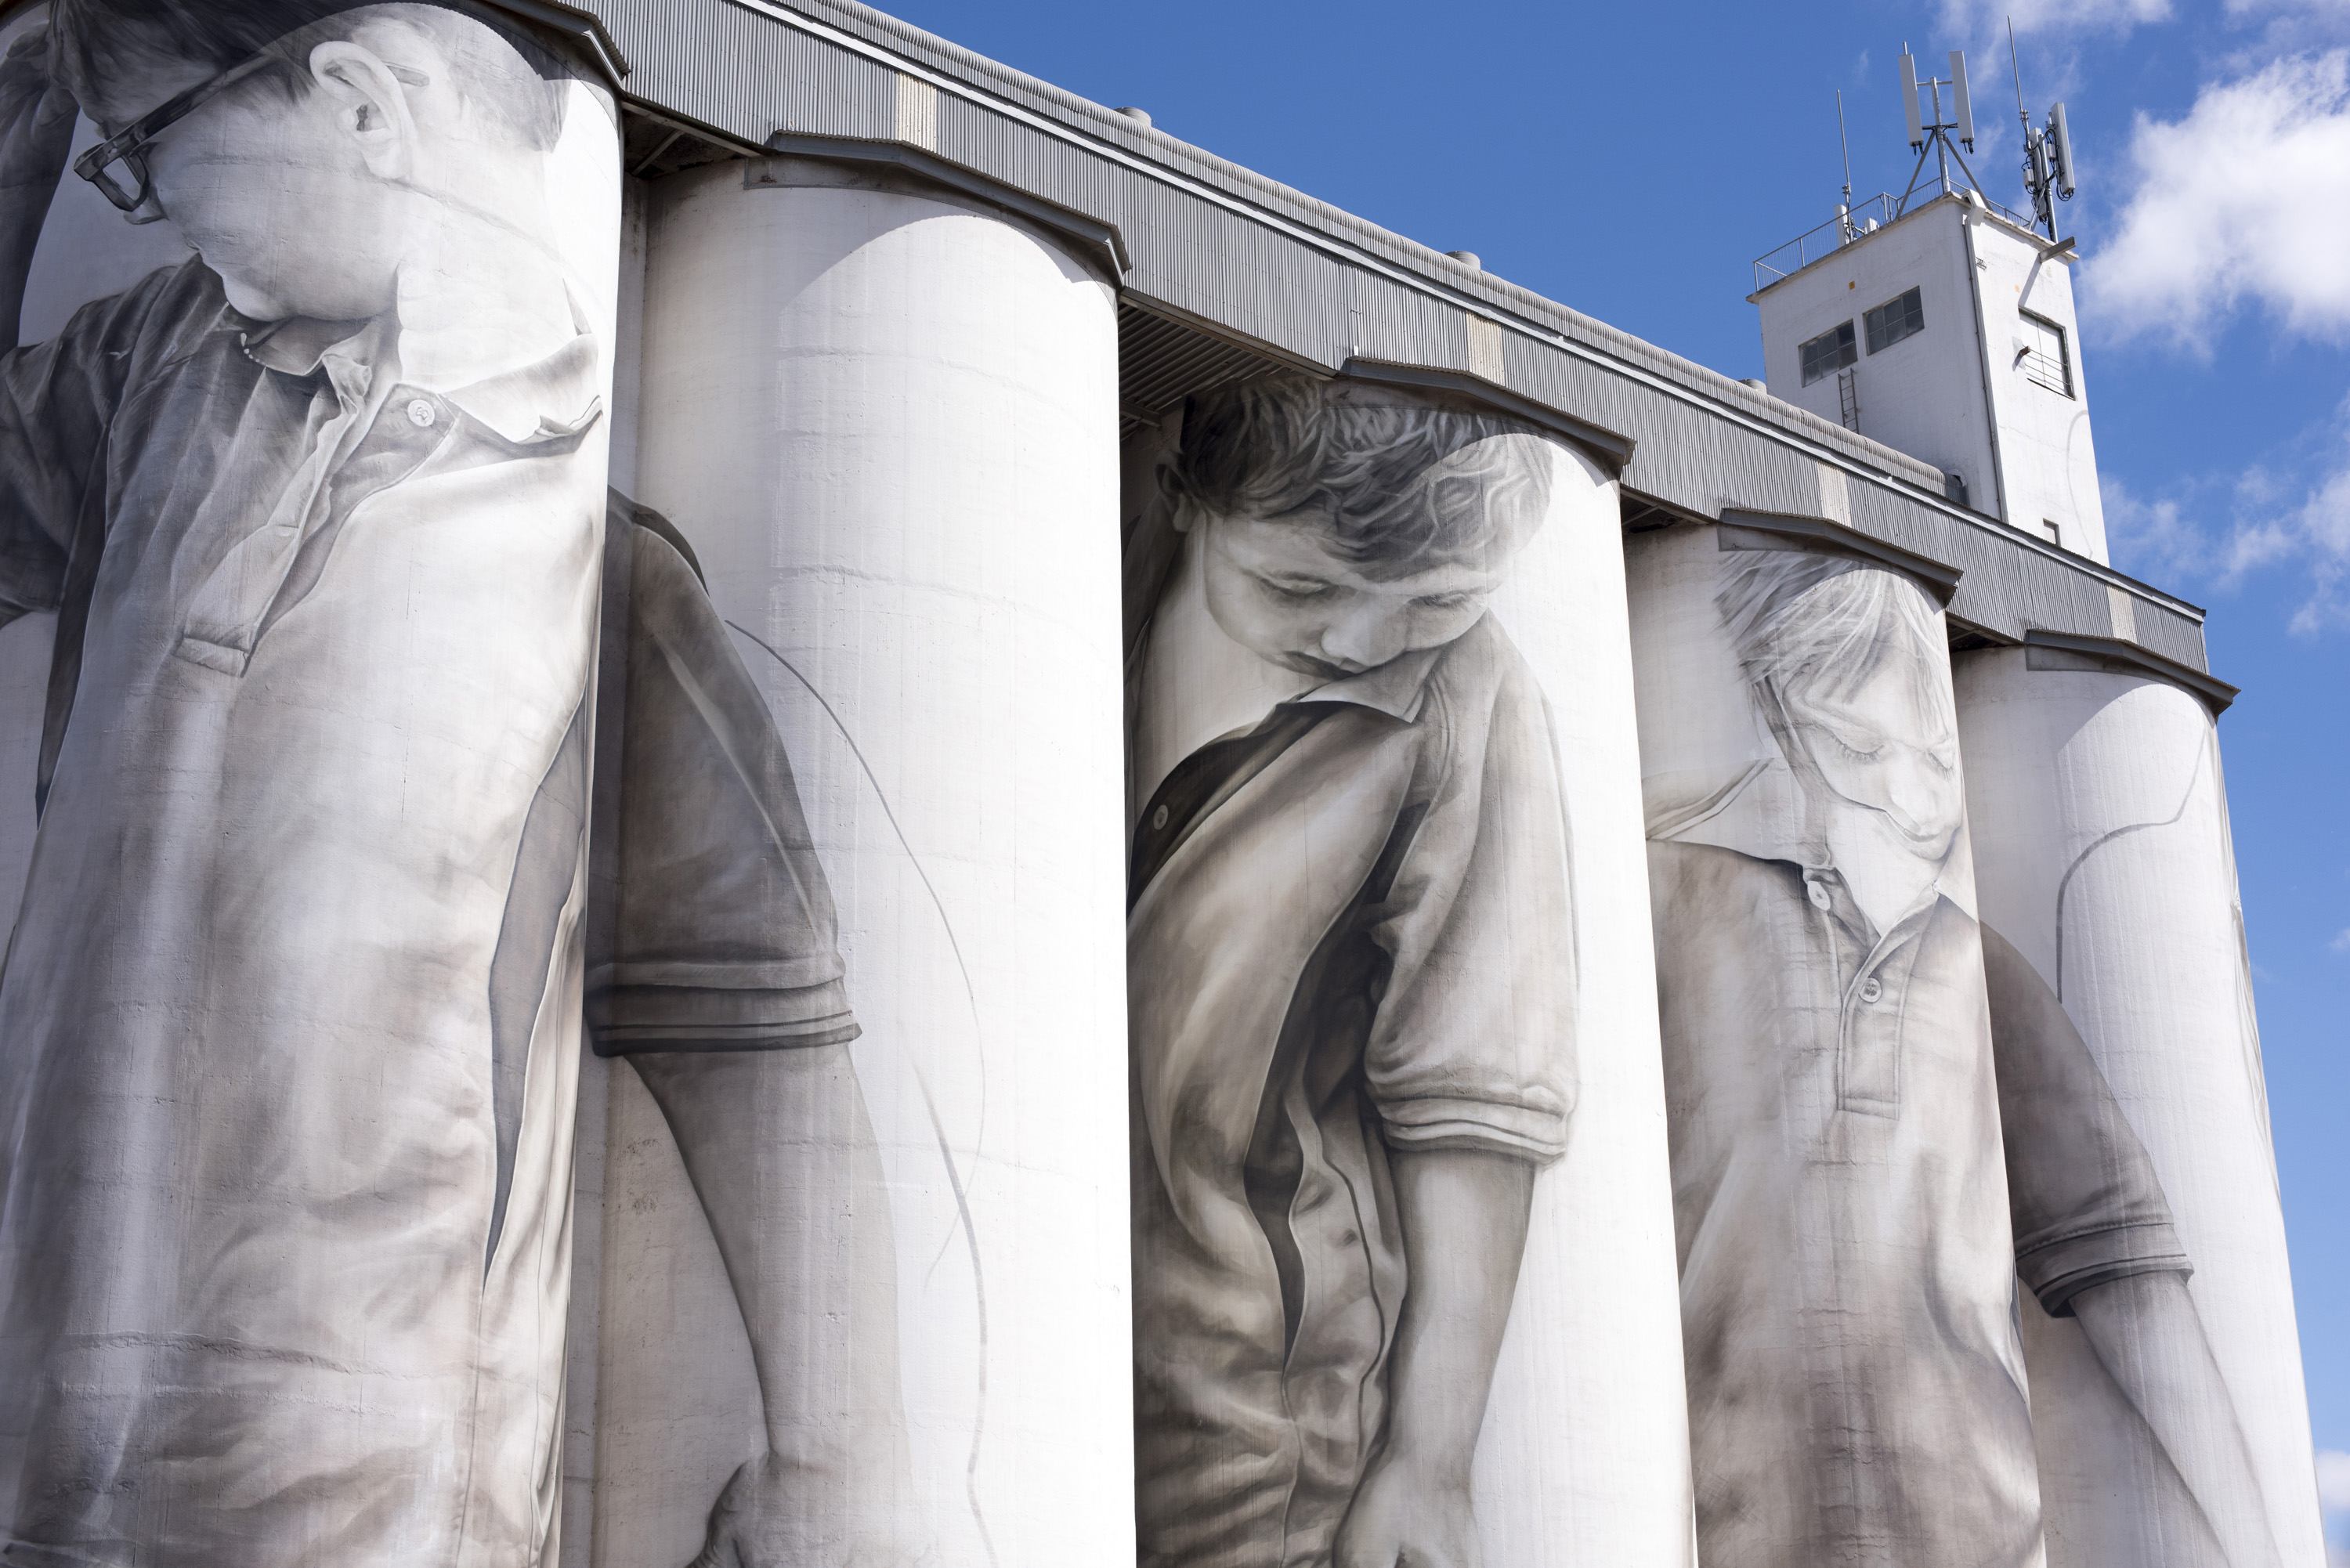 Closeup of large decorated grain silos in Coonalpyn, South Australia with murals of men drawn on the facades against a blue sky